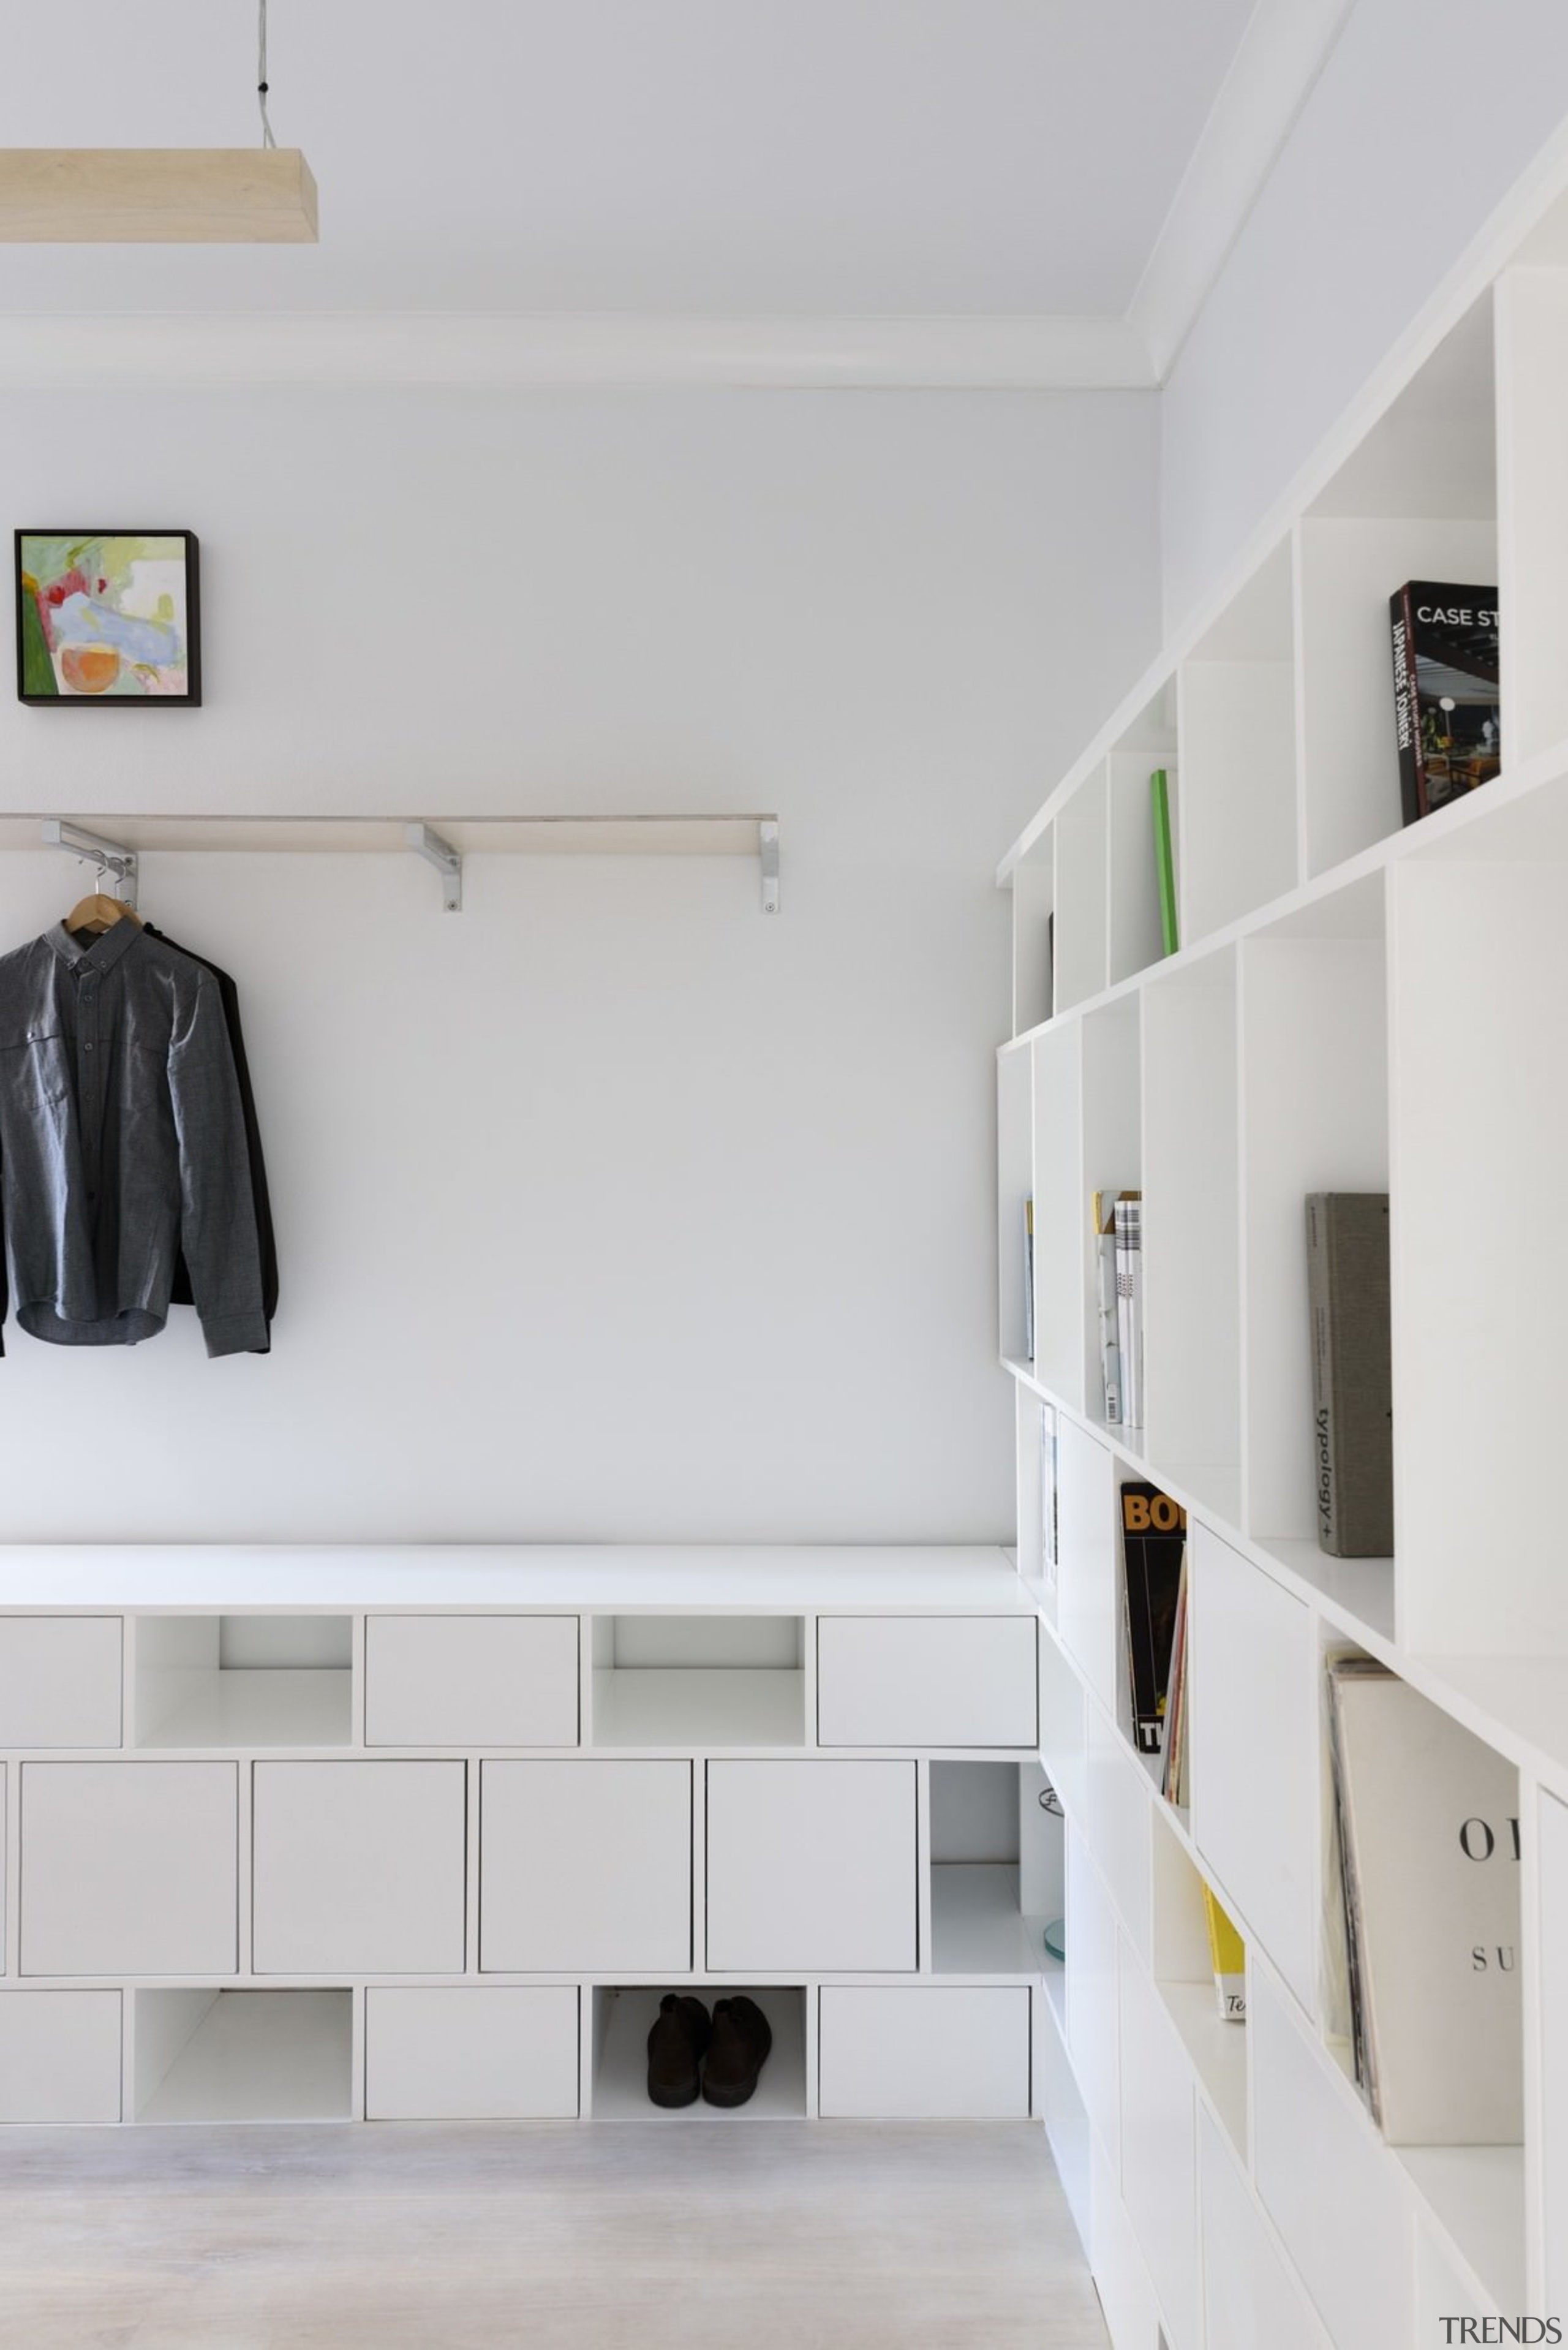 There's room for shoes, coats, books and more architecture, floor, furniture, interior design, product design, room, shelf, shelving, wall, gray